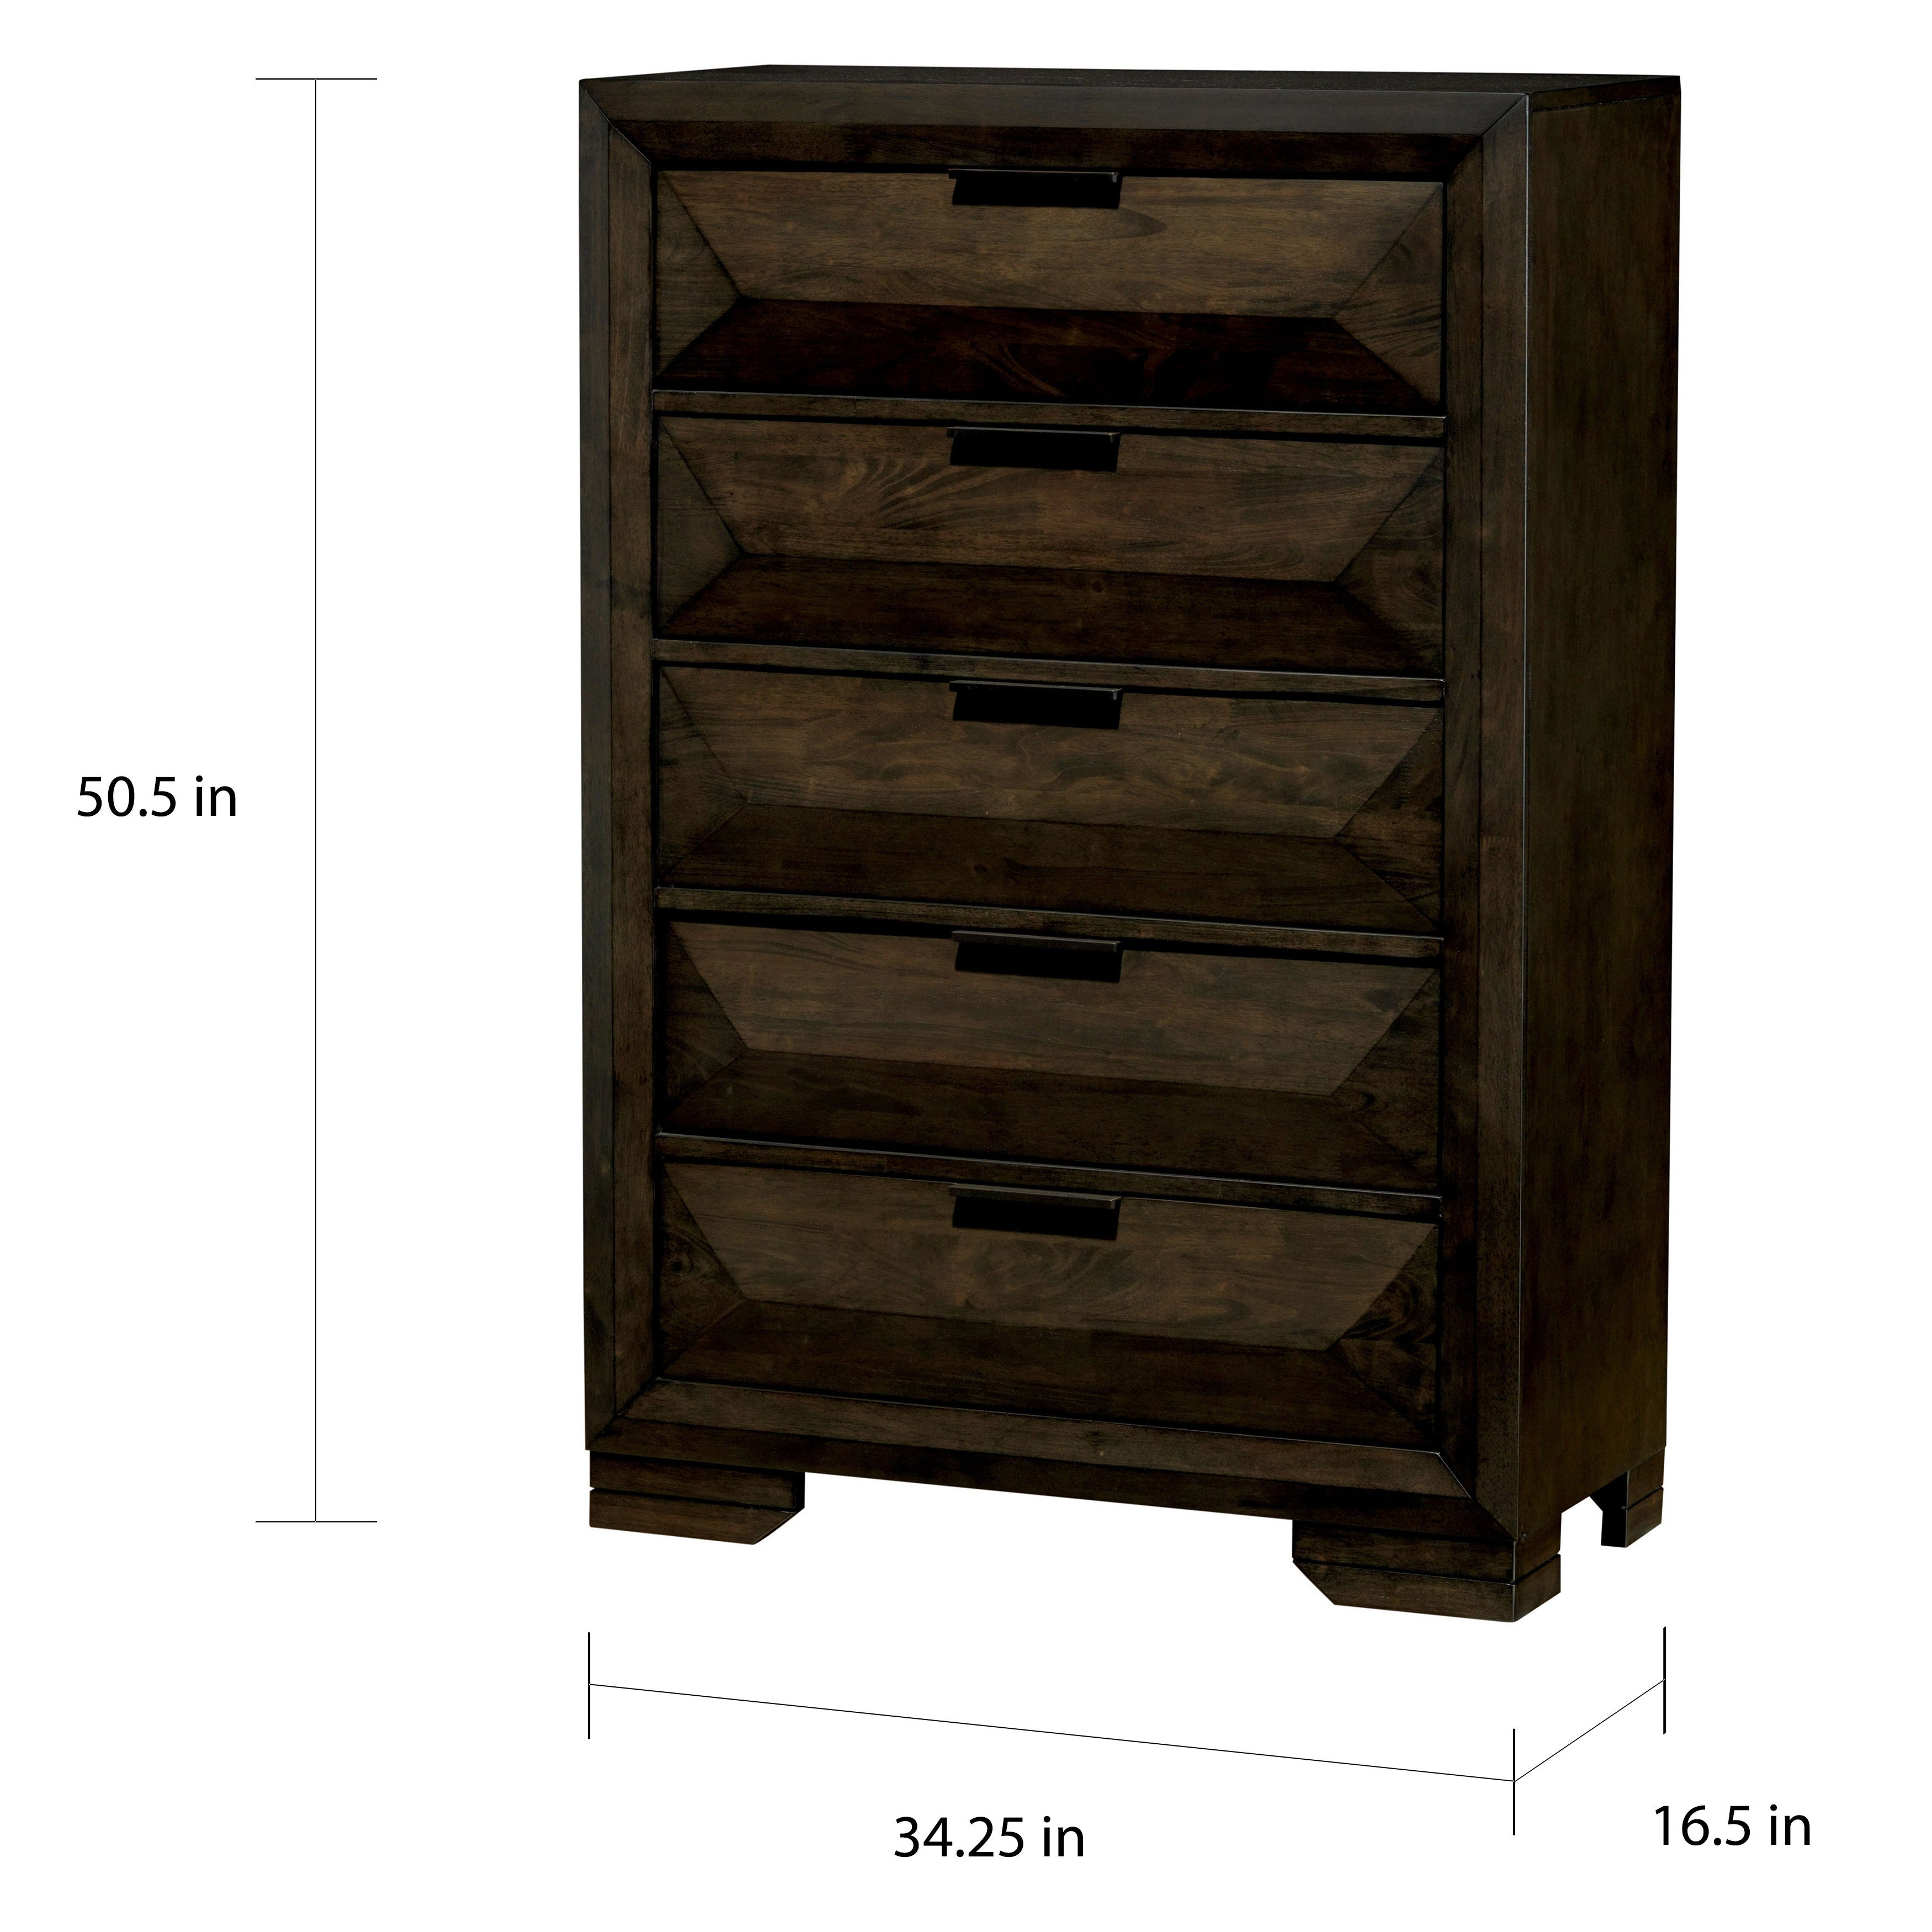 Angled Rustic Espresso 5 Drawer Chest By Foa On Free Shipping Today 18221889